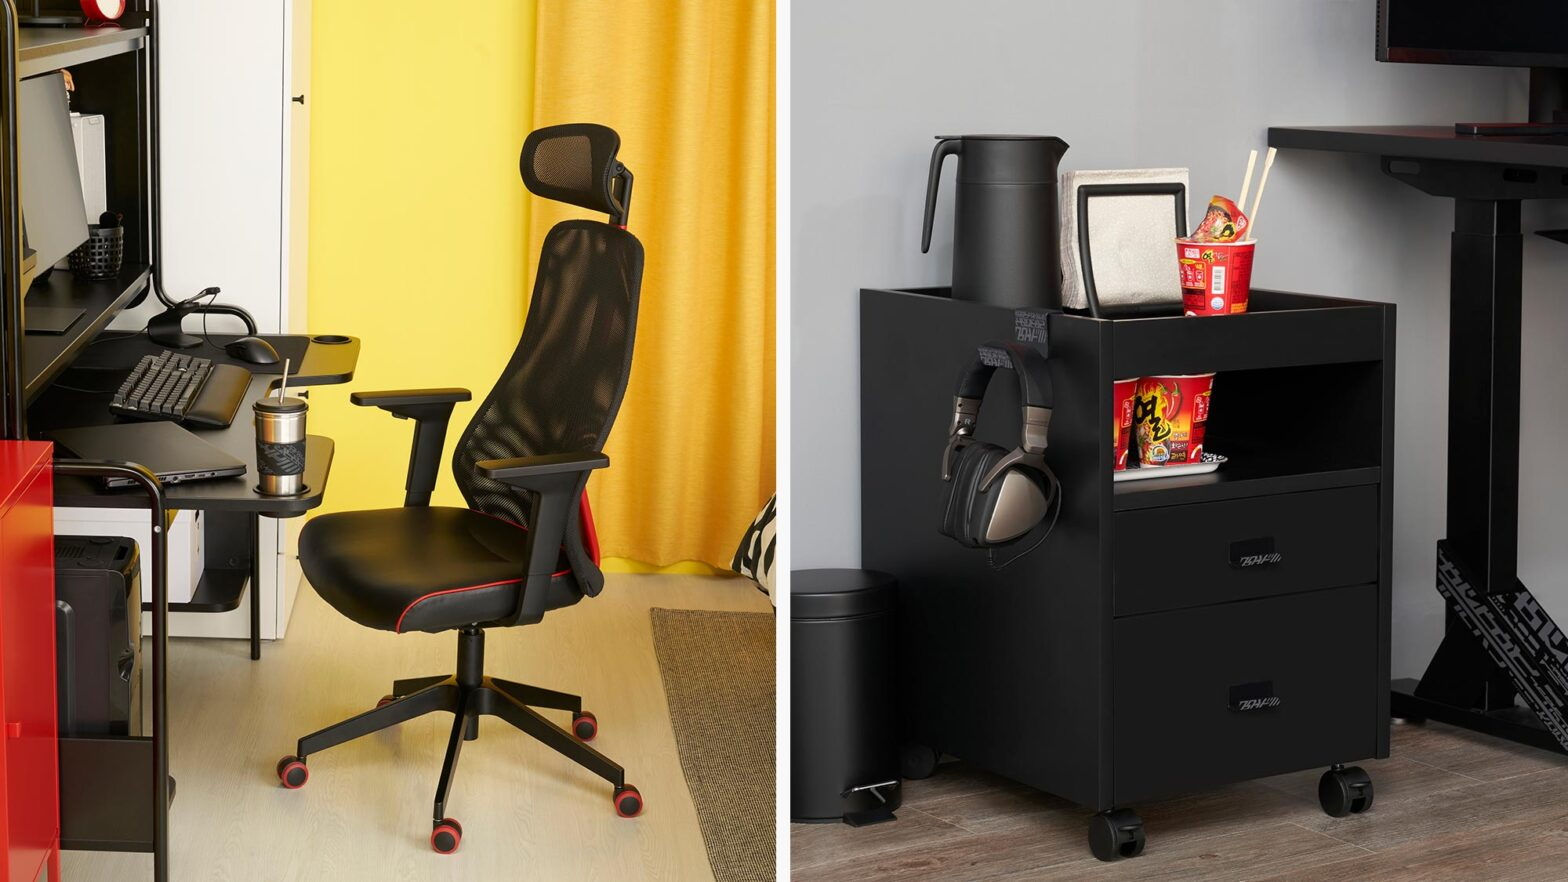 IKEA Line of Gaming Furniture